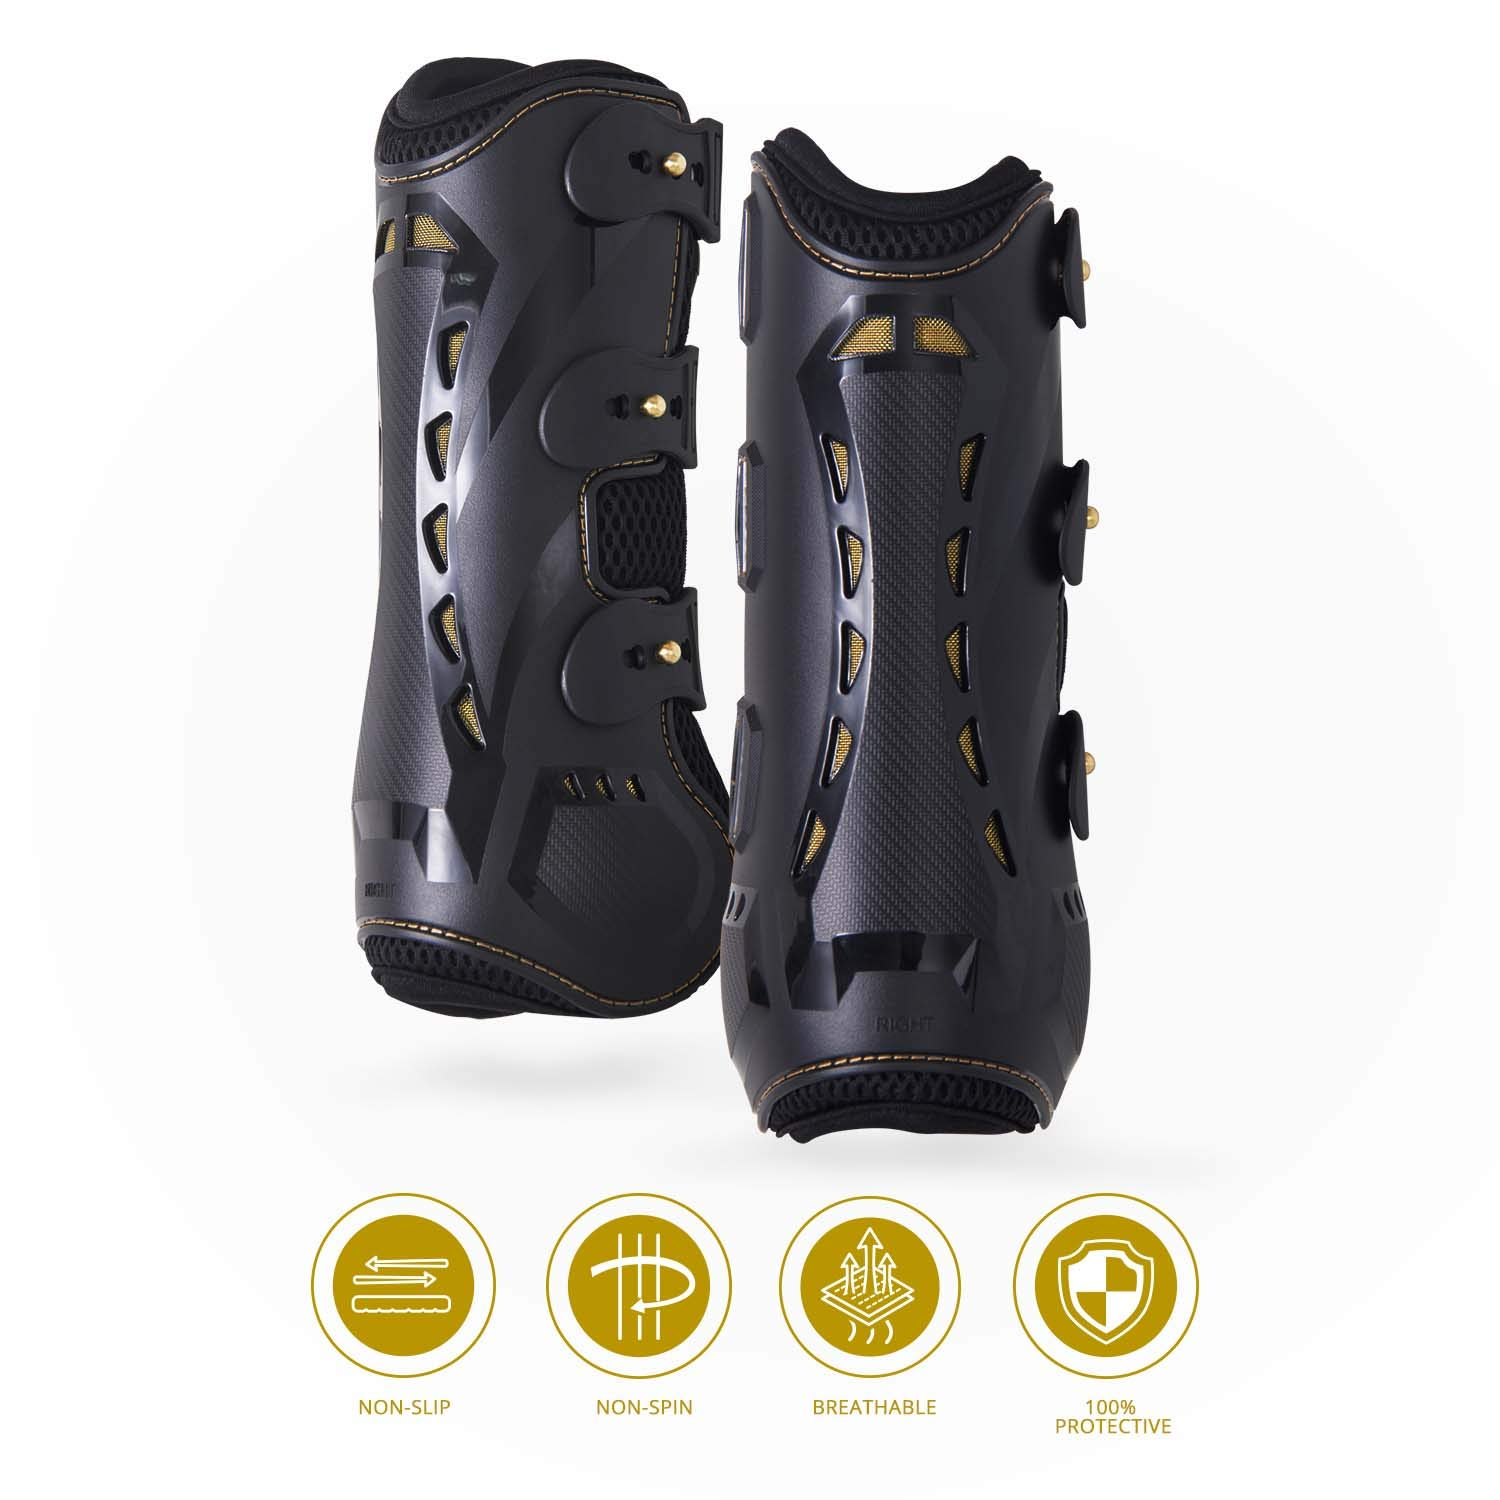 Kavallerie Classic Tendon Boots, Impact-Absorbing Material, Breathable & Evenly Distribute Pressure, Protect Tendon and Ligaments, Anti-Slip, Anti- Sore and Moisture Repellant Show Jumping Boots